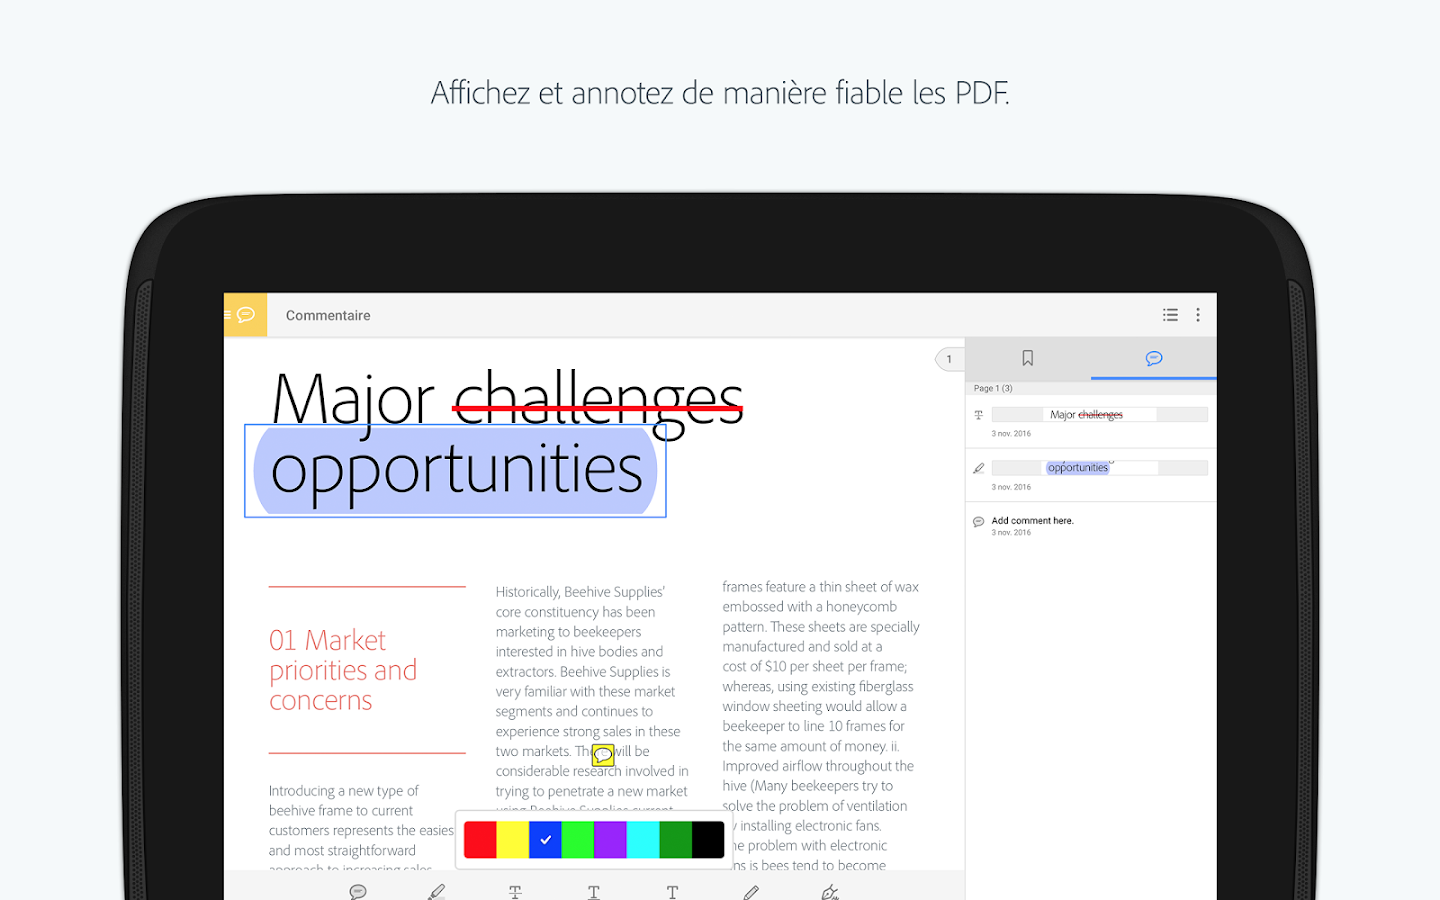 Adobe Acrobat Reader – Capture d'écran